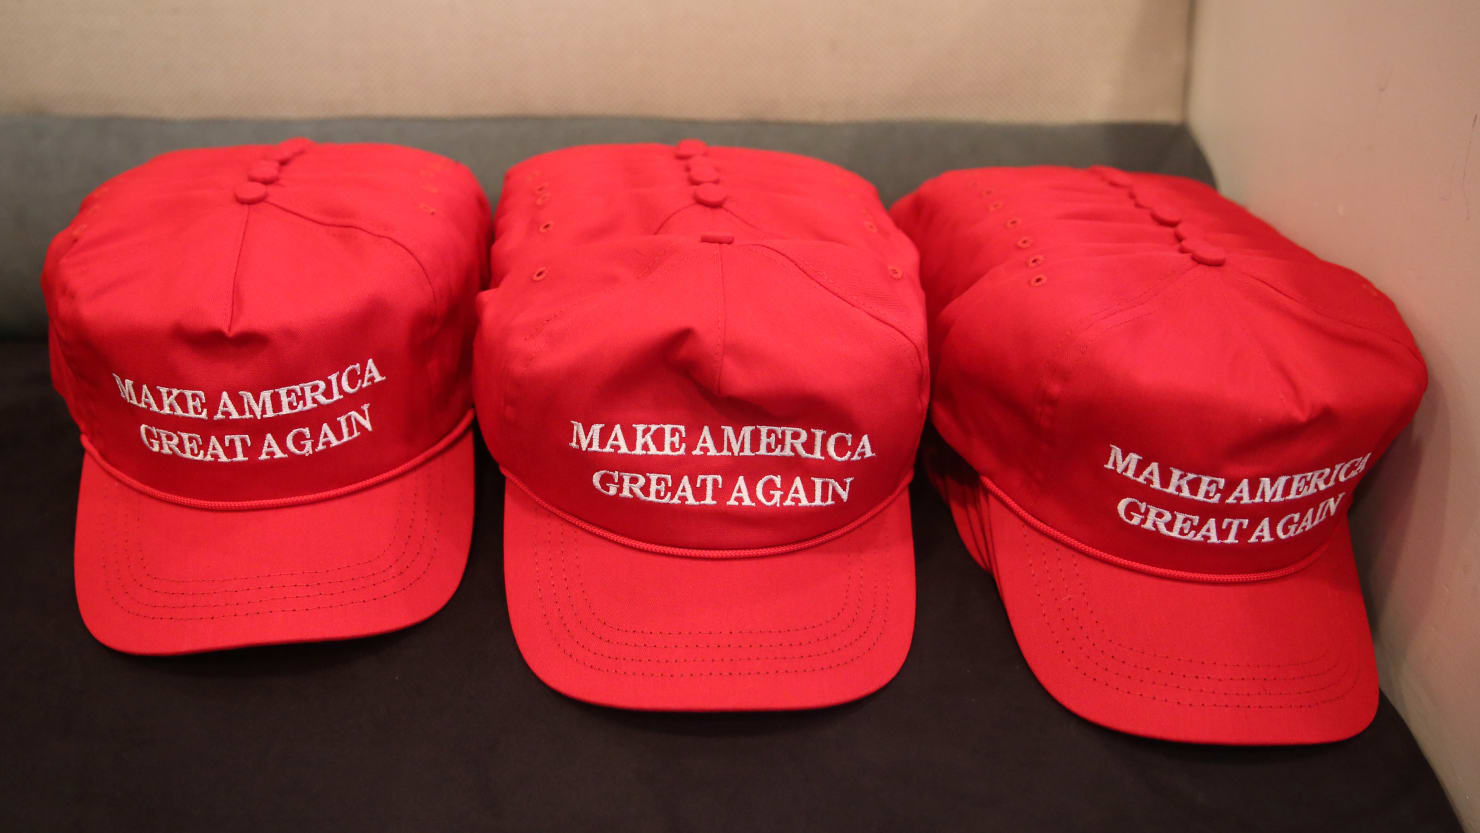 Activist Who Berated Elderly Man in MAGA Hat Is Missing